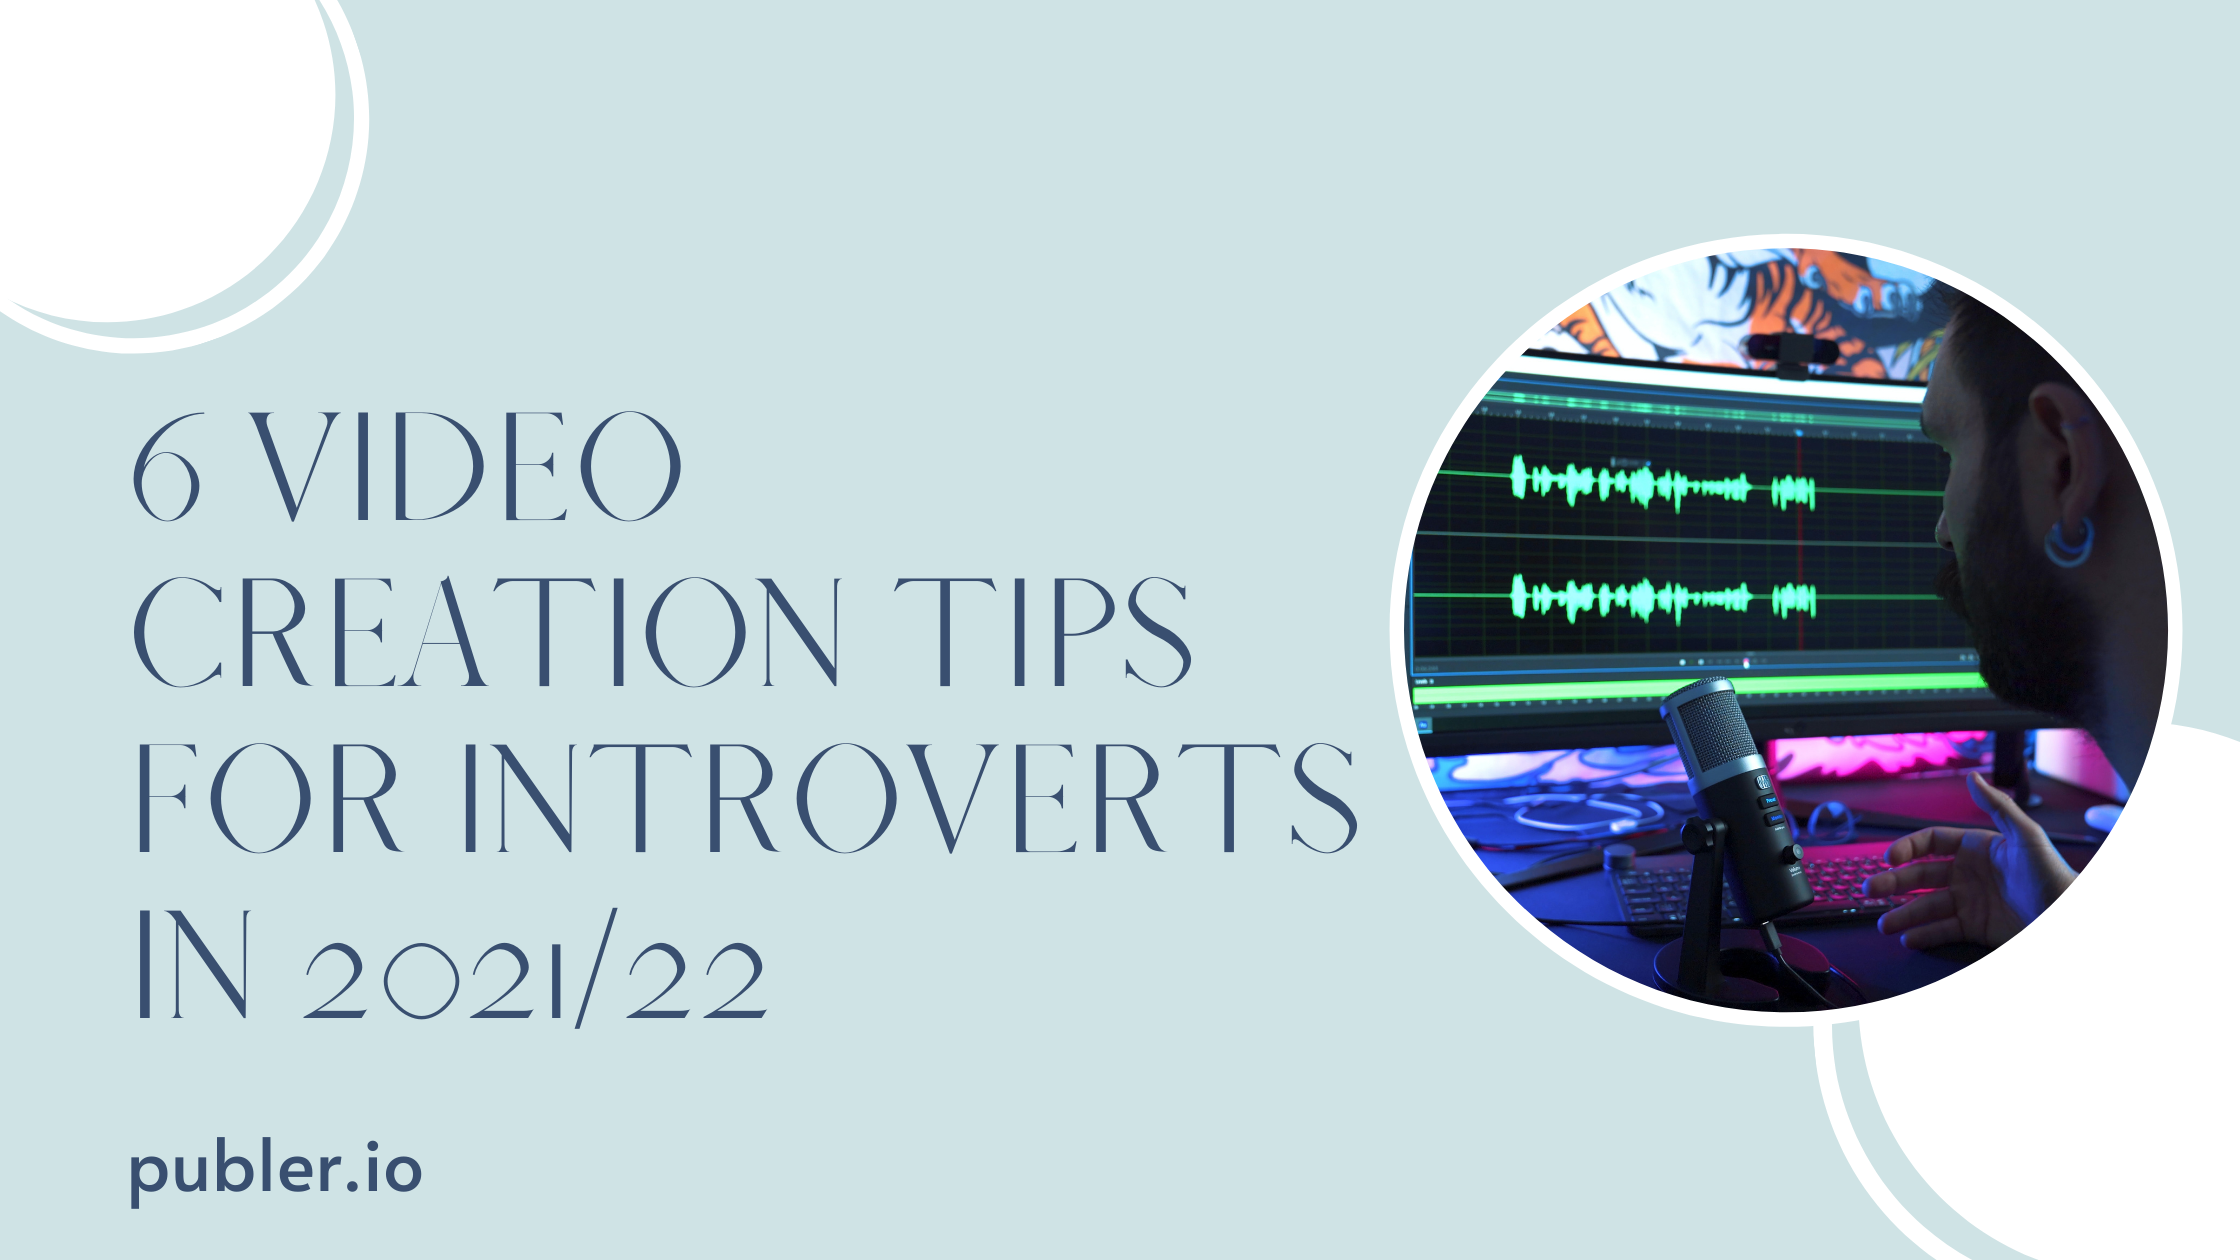 6 Video Creation Tips for Introverts in 2021/22 by Publer